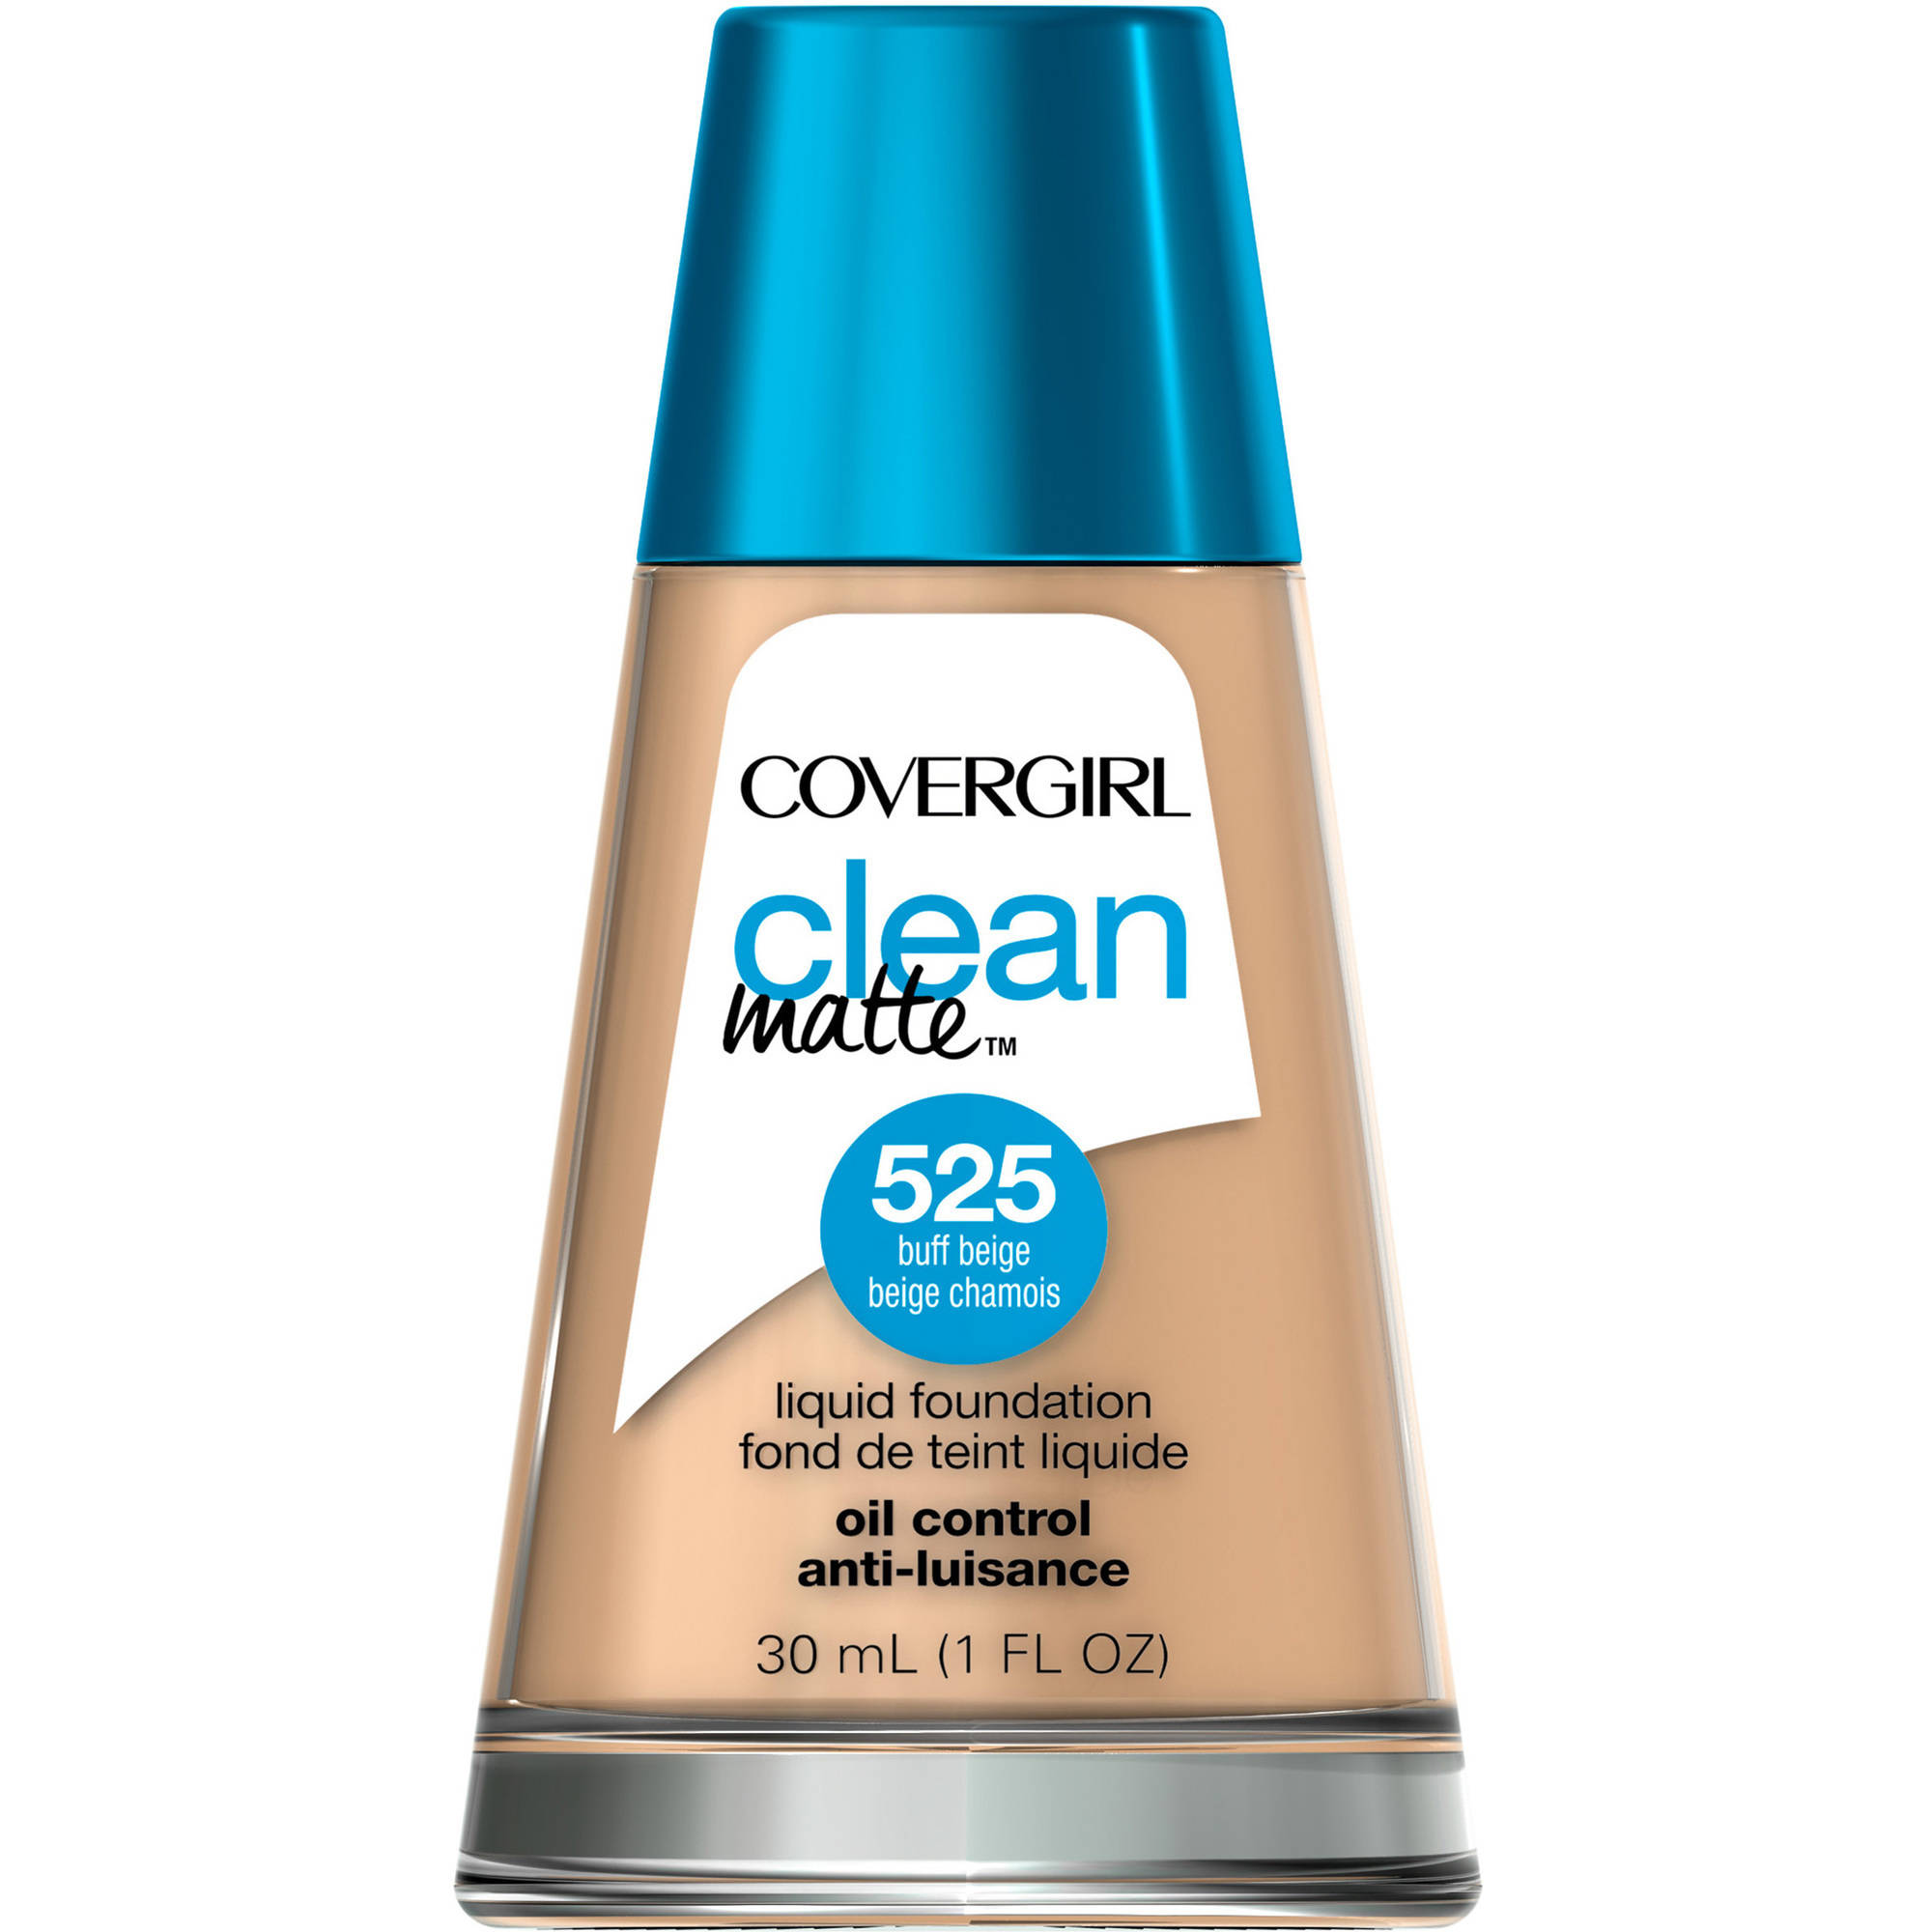 COVERGIRL Clean Matte Liquid Foundation, 525 Buff Beige, 1 fl oz